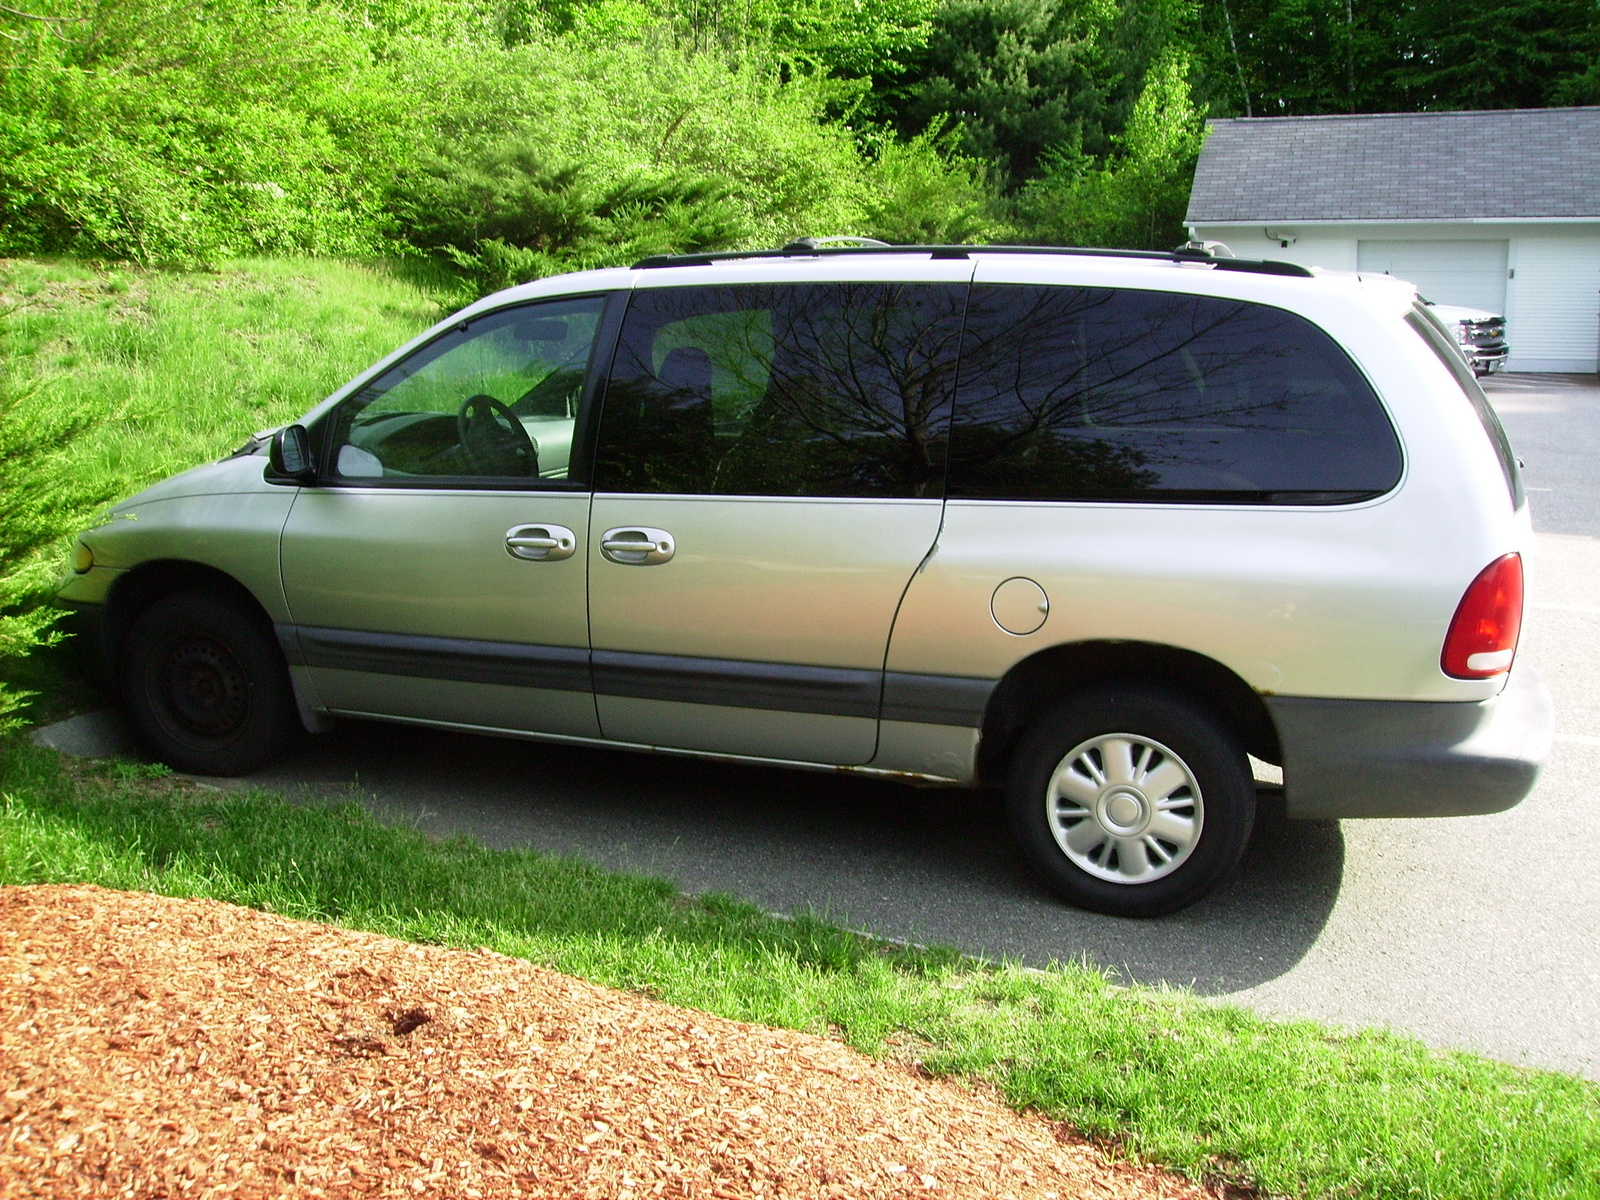 chrysler voyager 2000 - photo #26